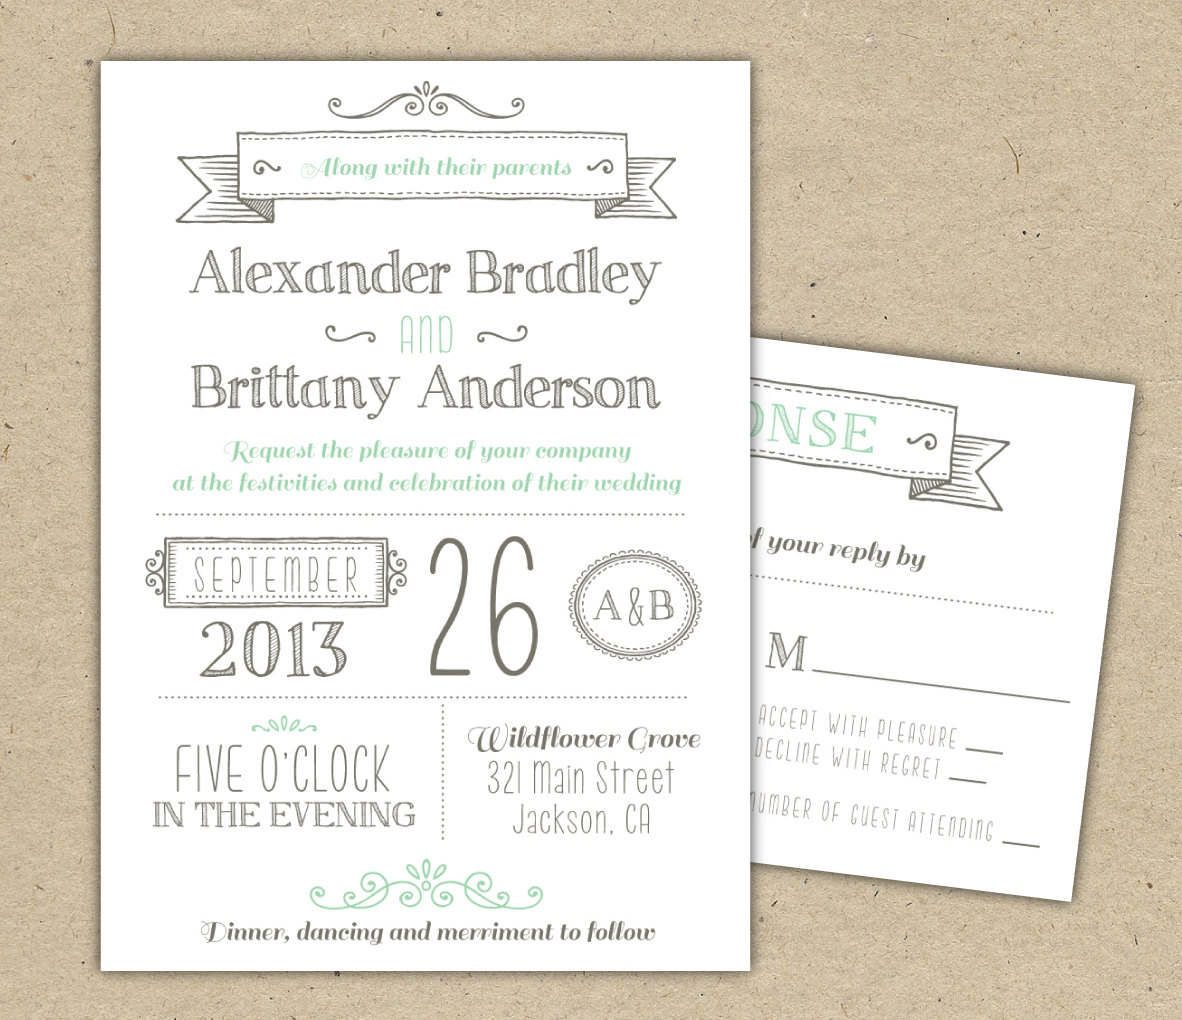 Create Invitation Template: Wedding Invitations Template Free Download